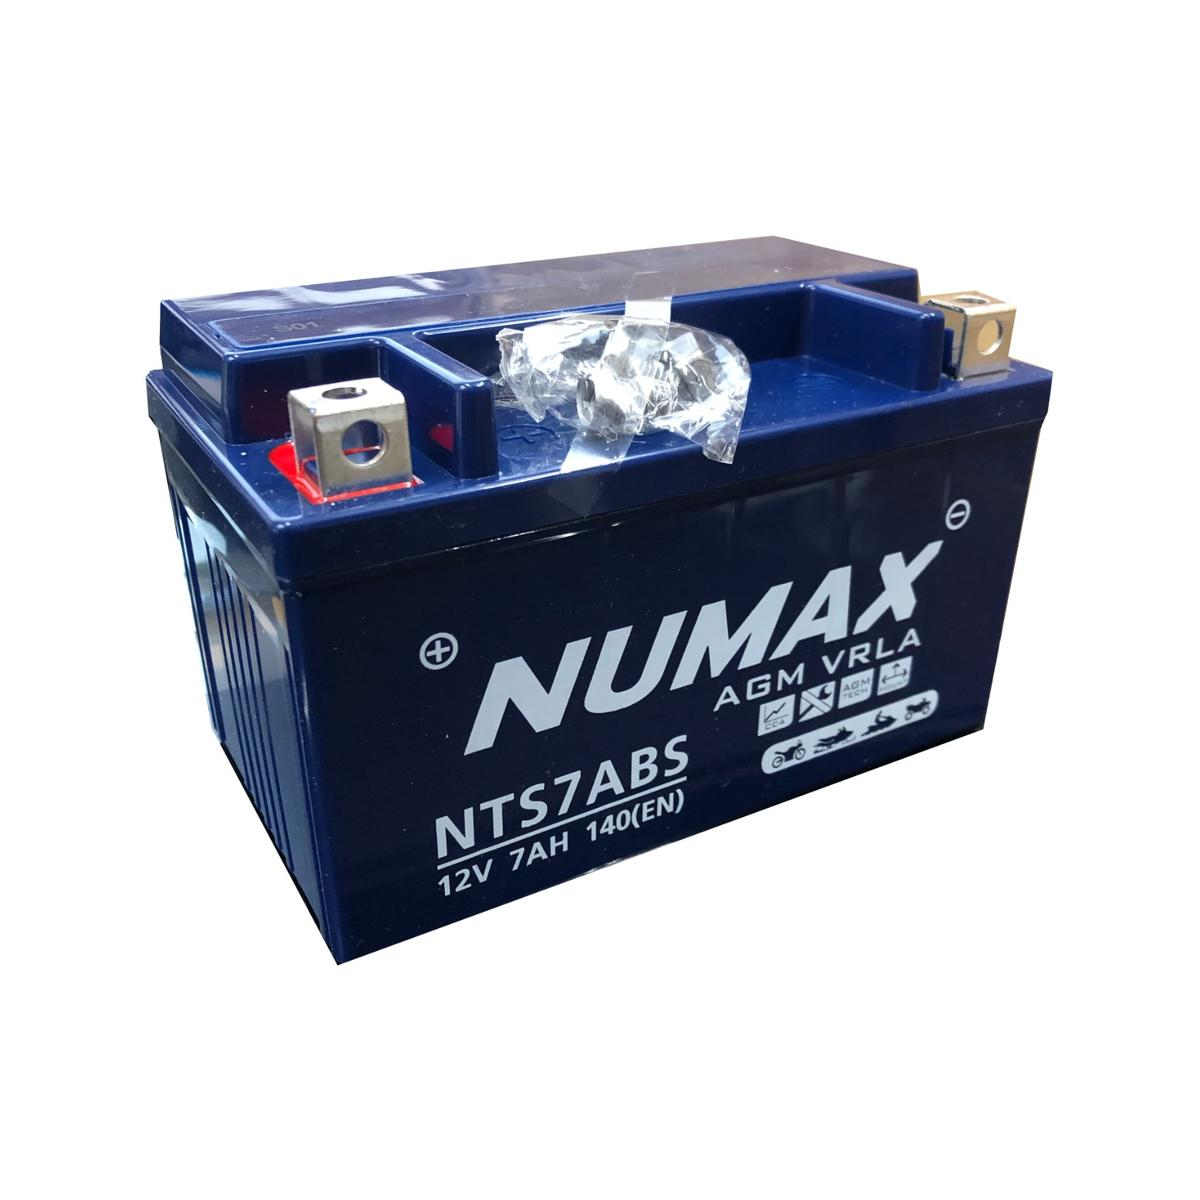 Numax NTS7ABS 12v Motorbike Bike Battery KYMCO 150cc People YTX7A-4